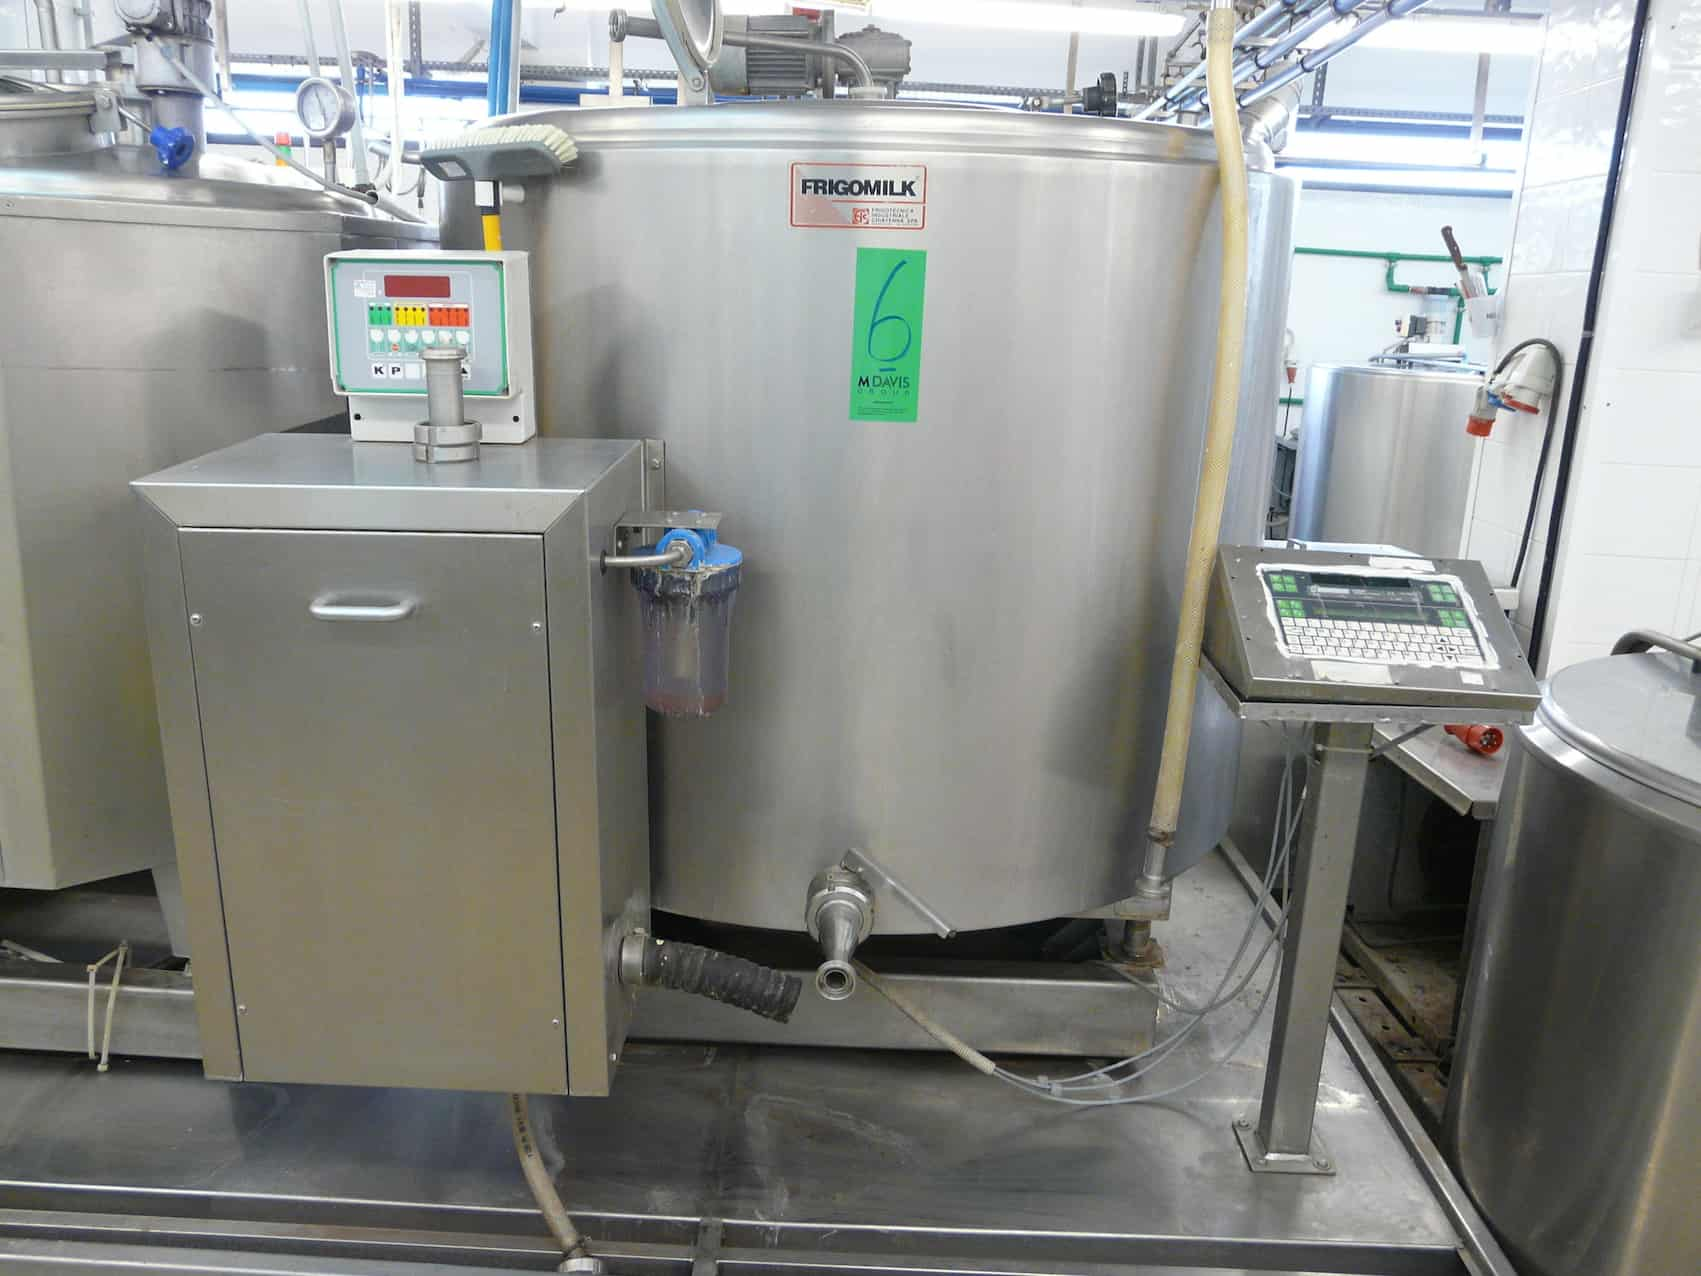 Mixing/Cooling Tank for Ice Cream 1000L with Agitator, Type FRIGOMILK, Self Contained Freon Condenser, Self Contained CIP System, Refrigerant Liquid R22, Contains Scales with Analogue Display that can be connected to PC, Y.O.M: 2003